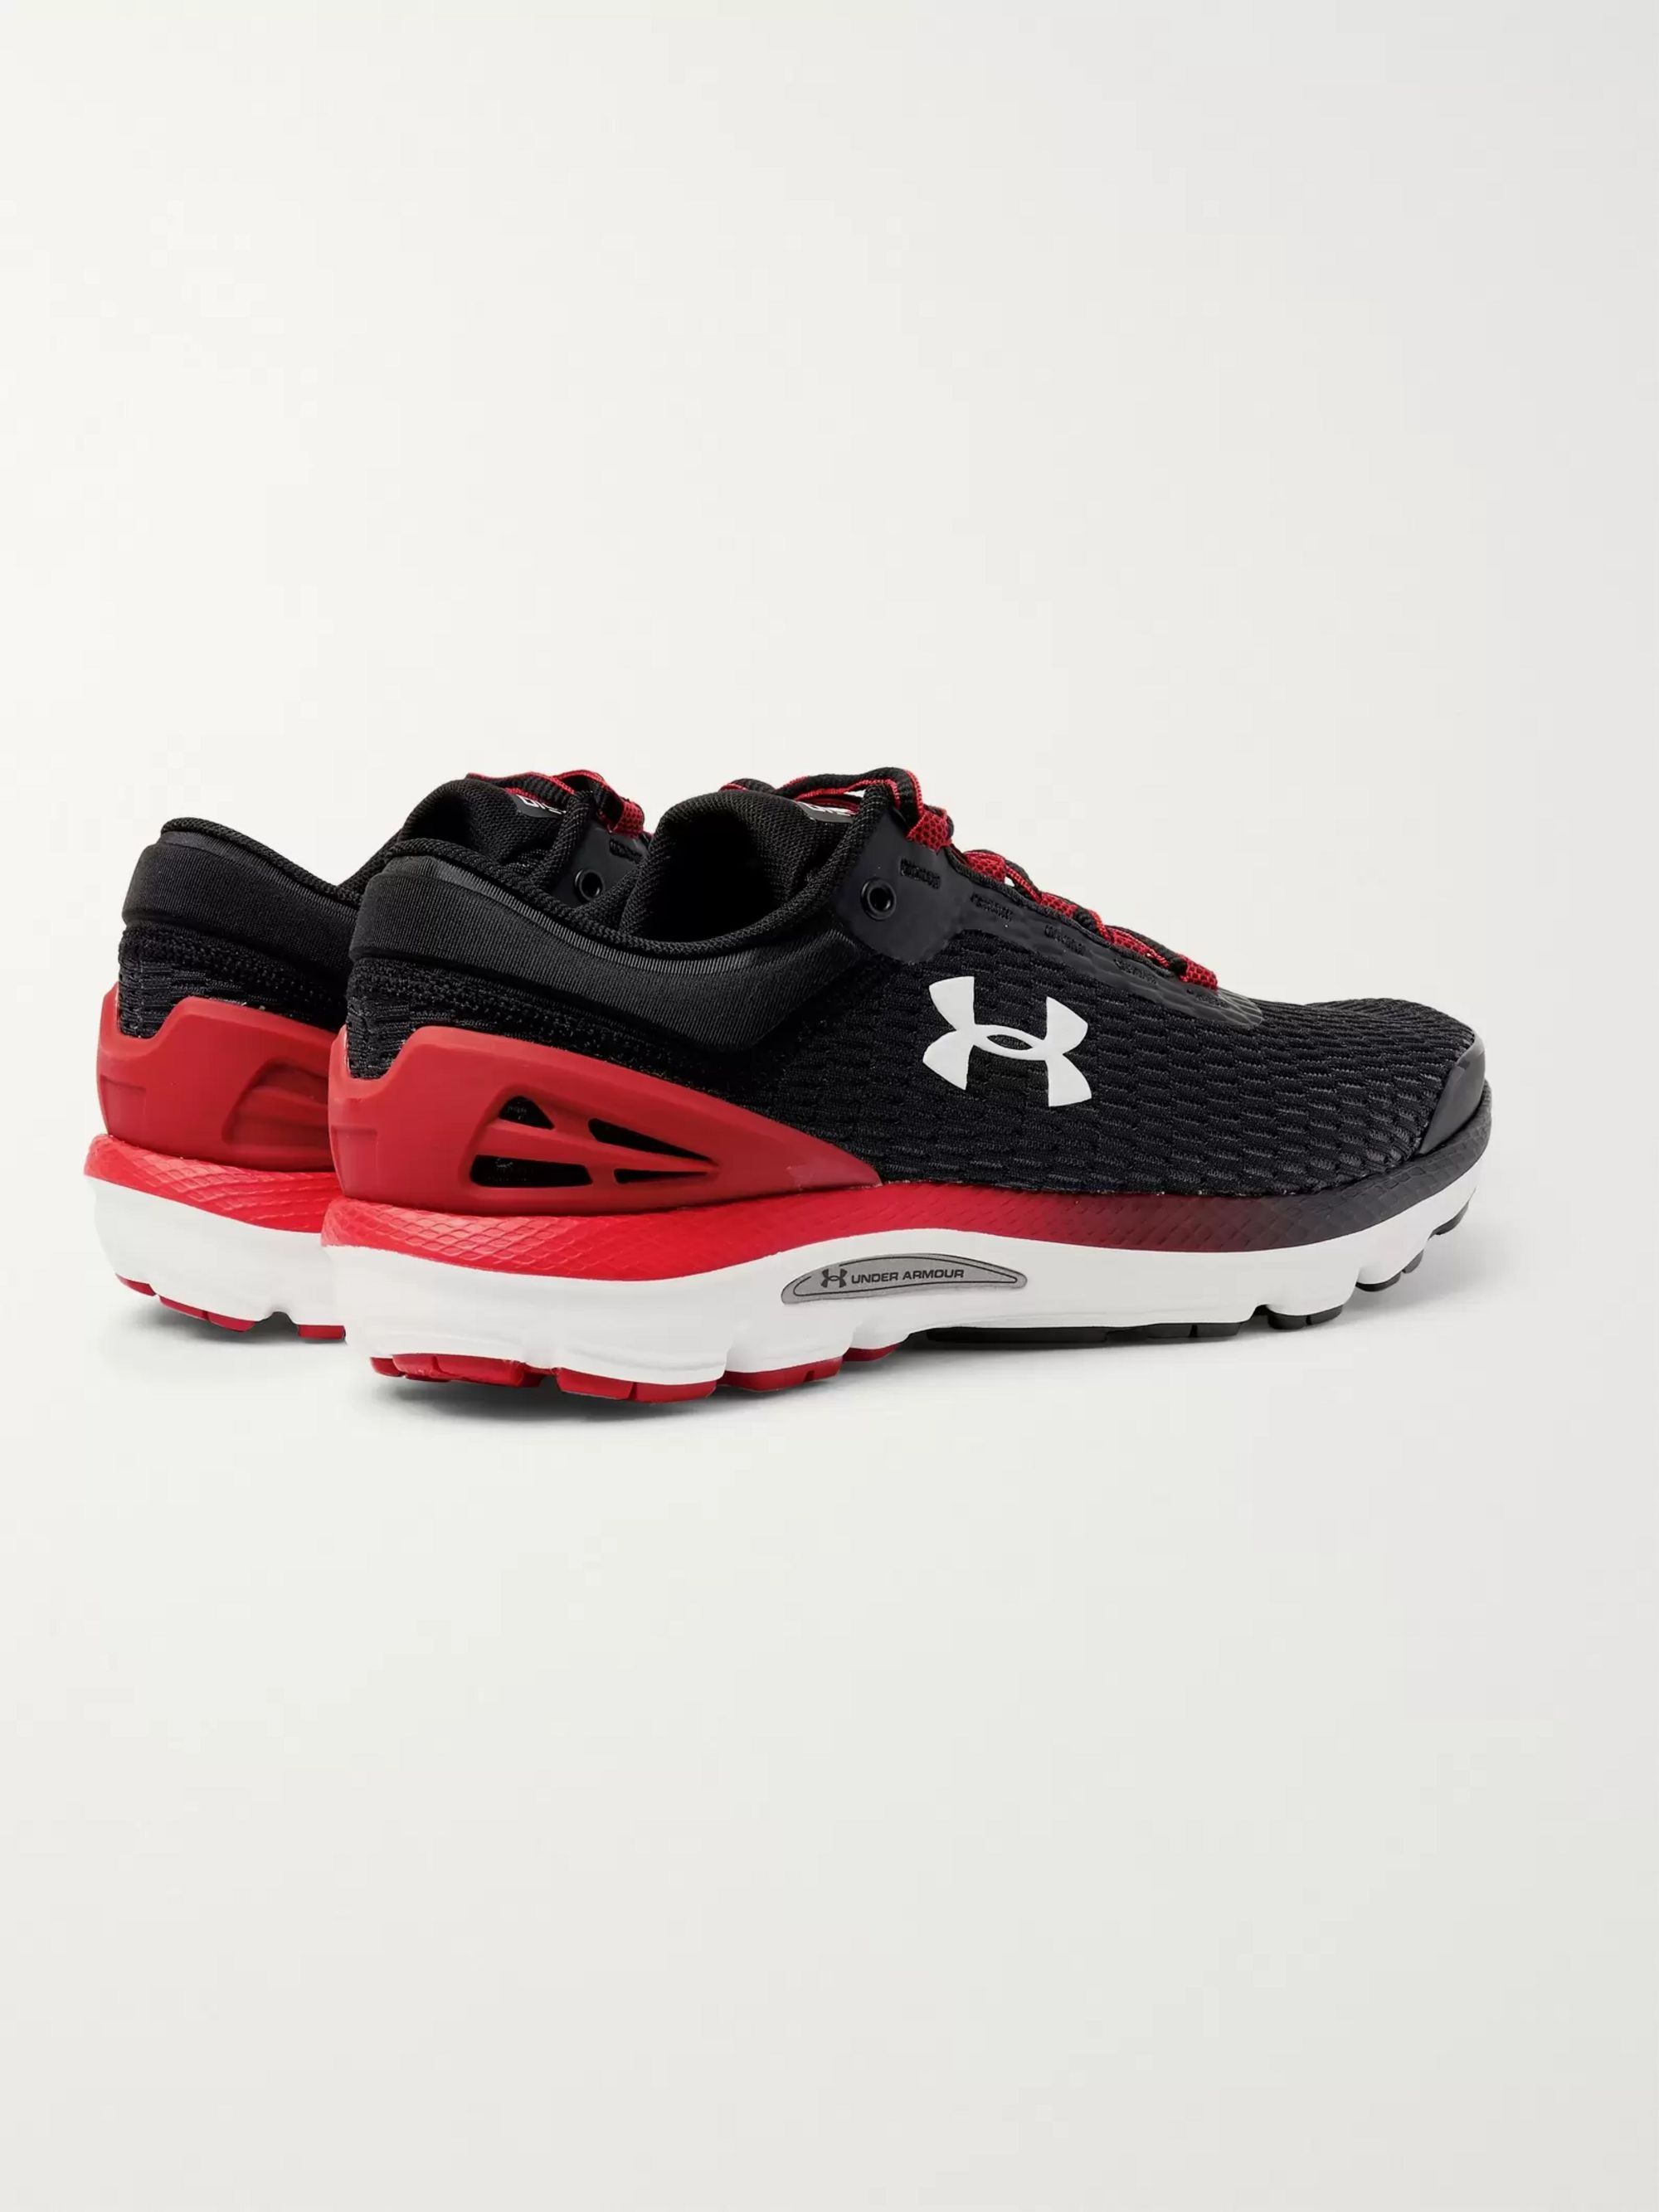 Under Armour Charged Intake 3 Mesh Sneakers